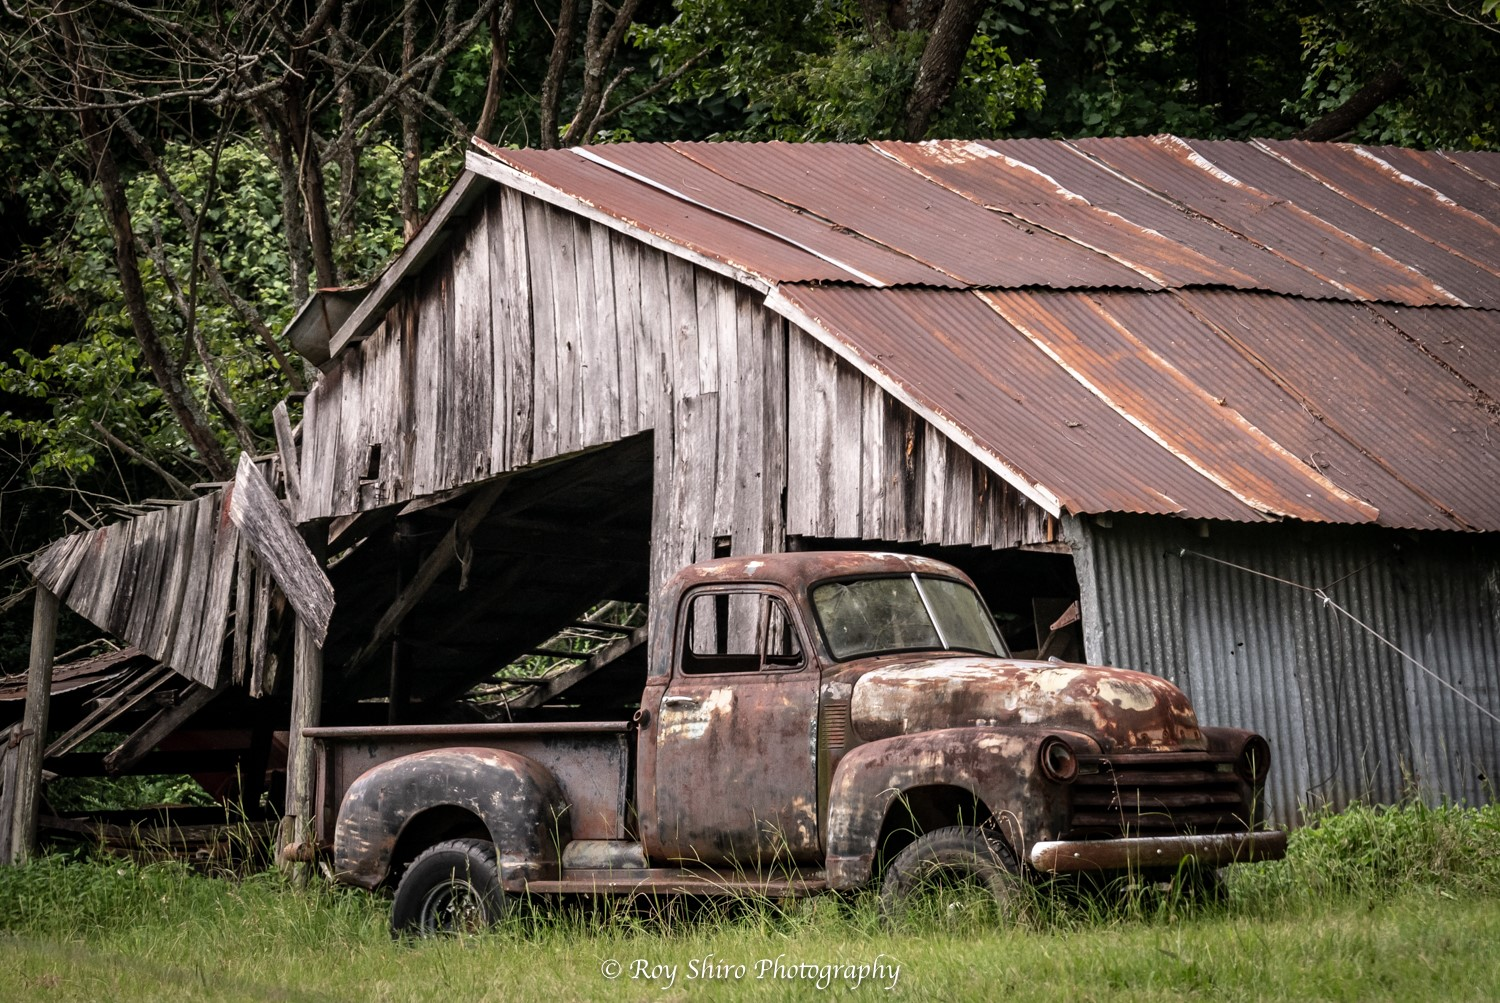 Rustic barn and rusty antique truck in a green pasture